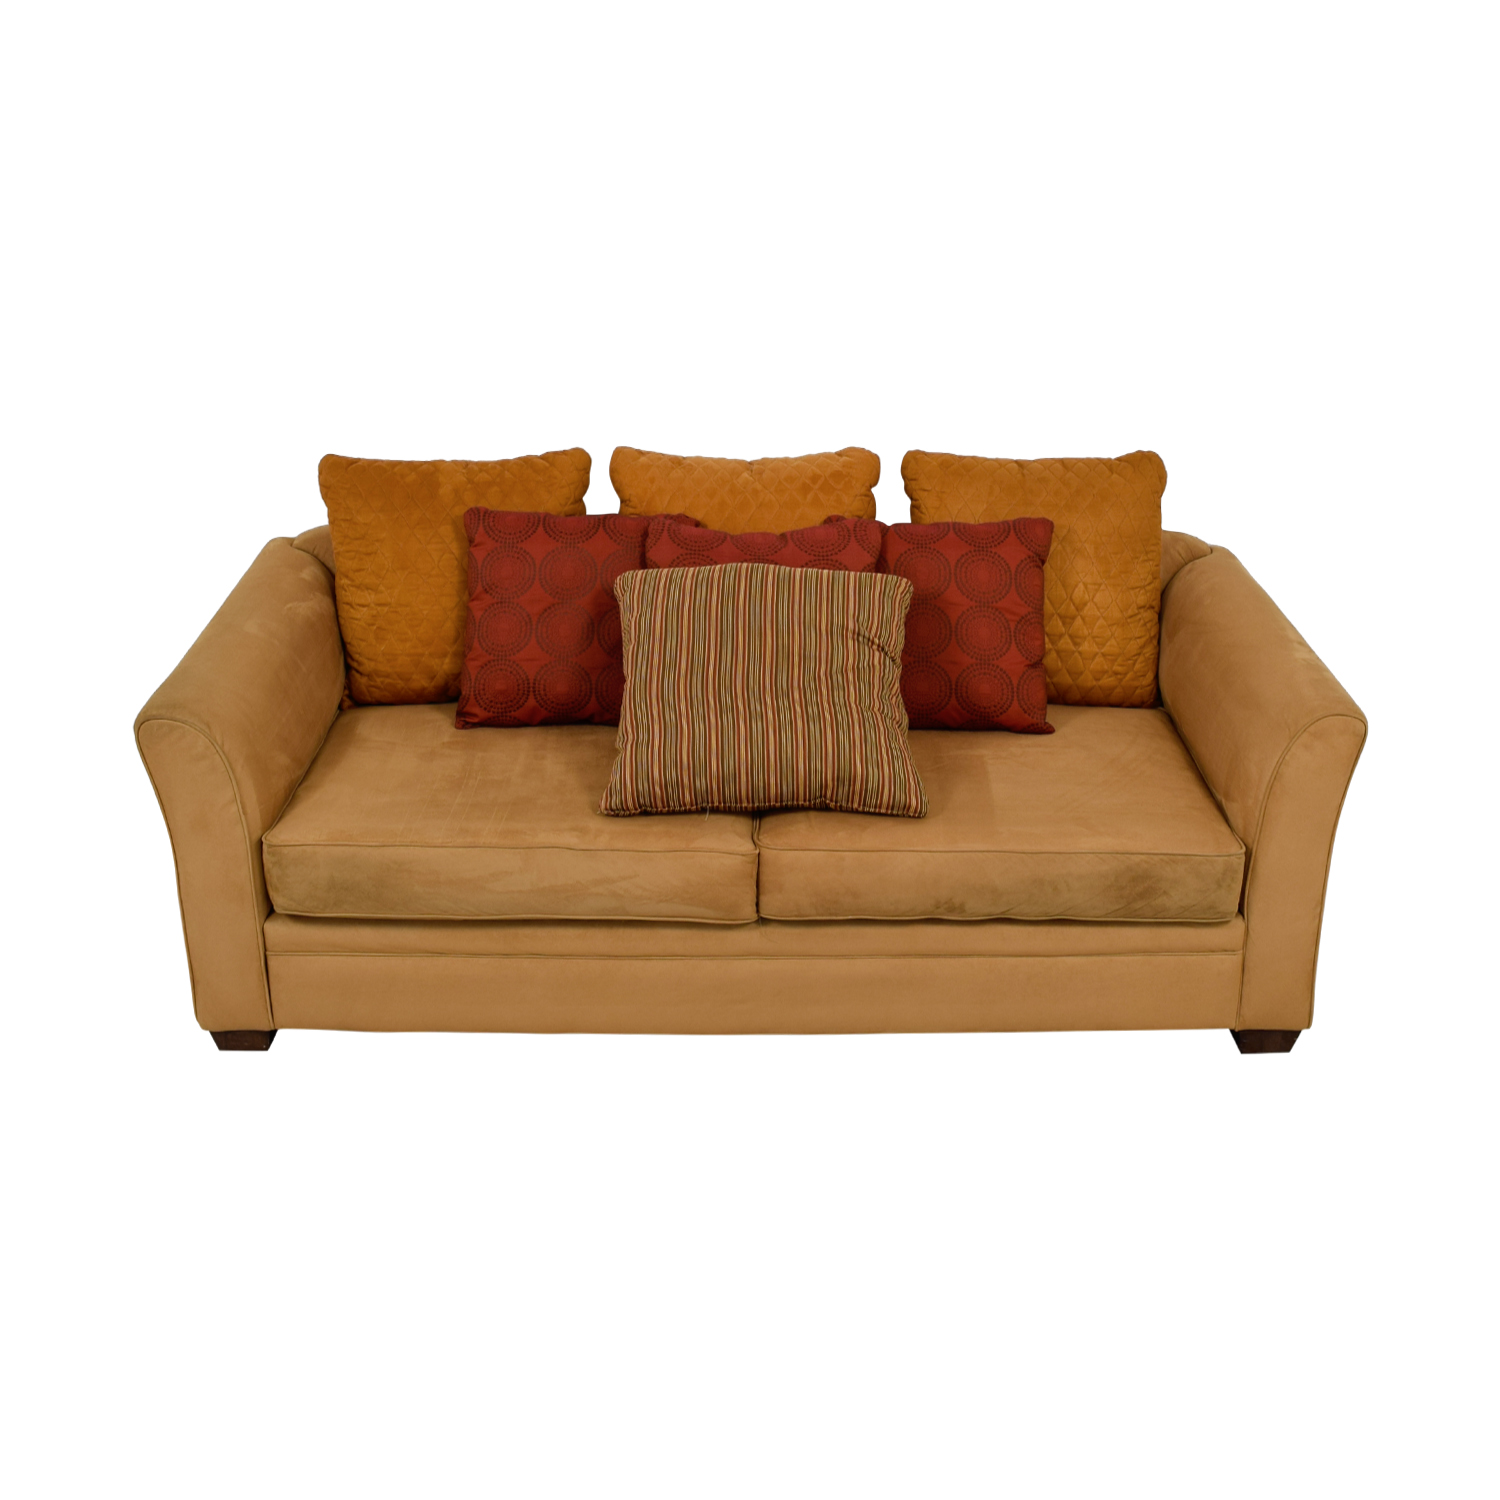 Raymour & Flanigan Raymour & Flanigan Camel Microsuede Two-Cushion Couch for sale